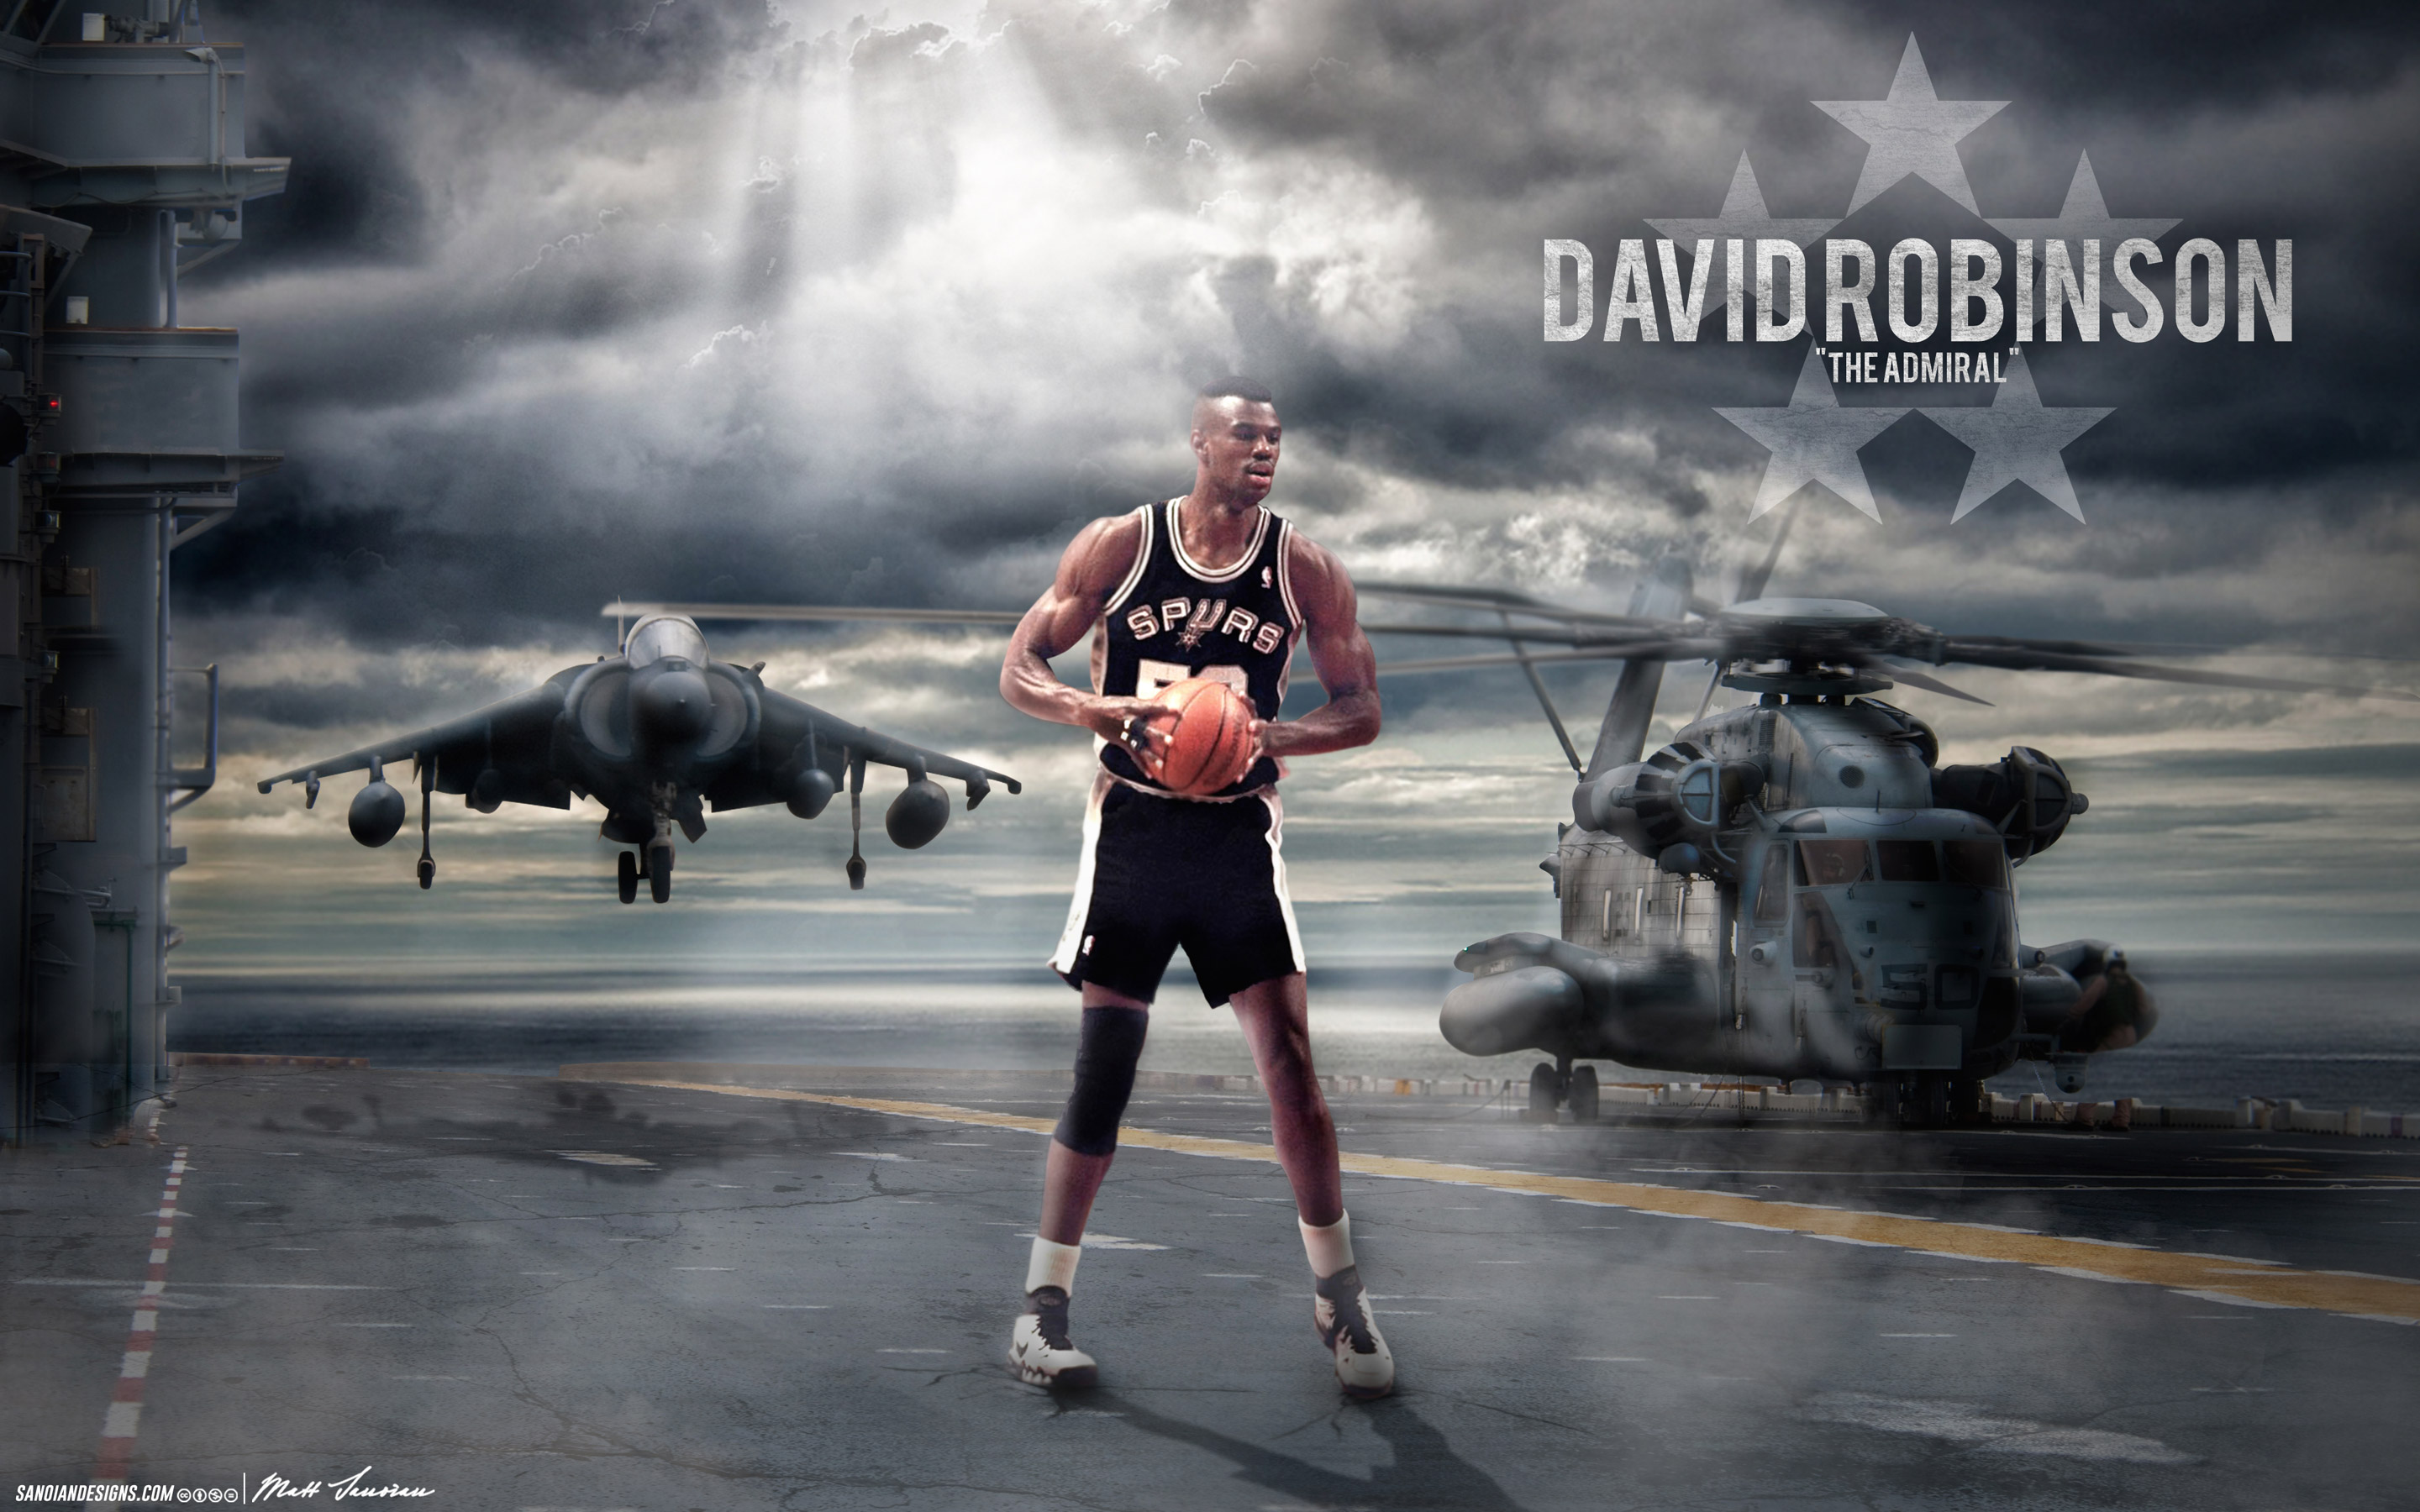 David Robinson Wallpapers and Background Images   stmednet 2880x1800